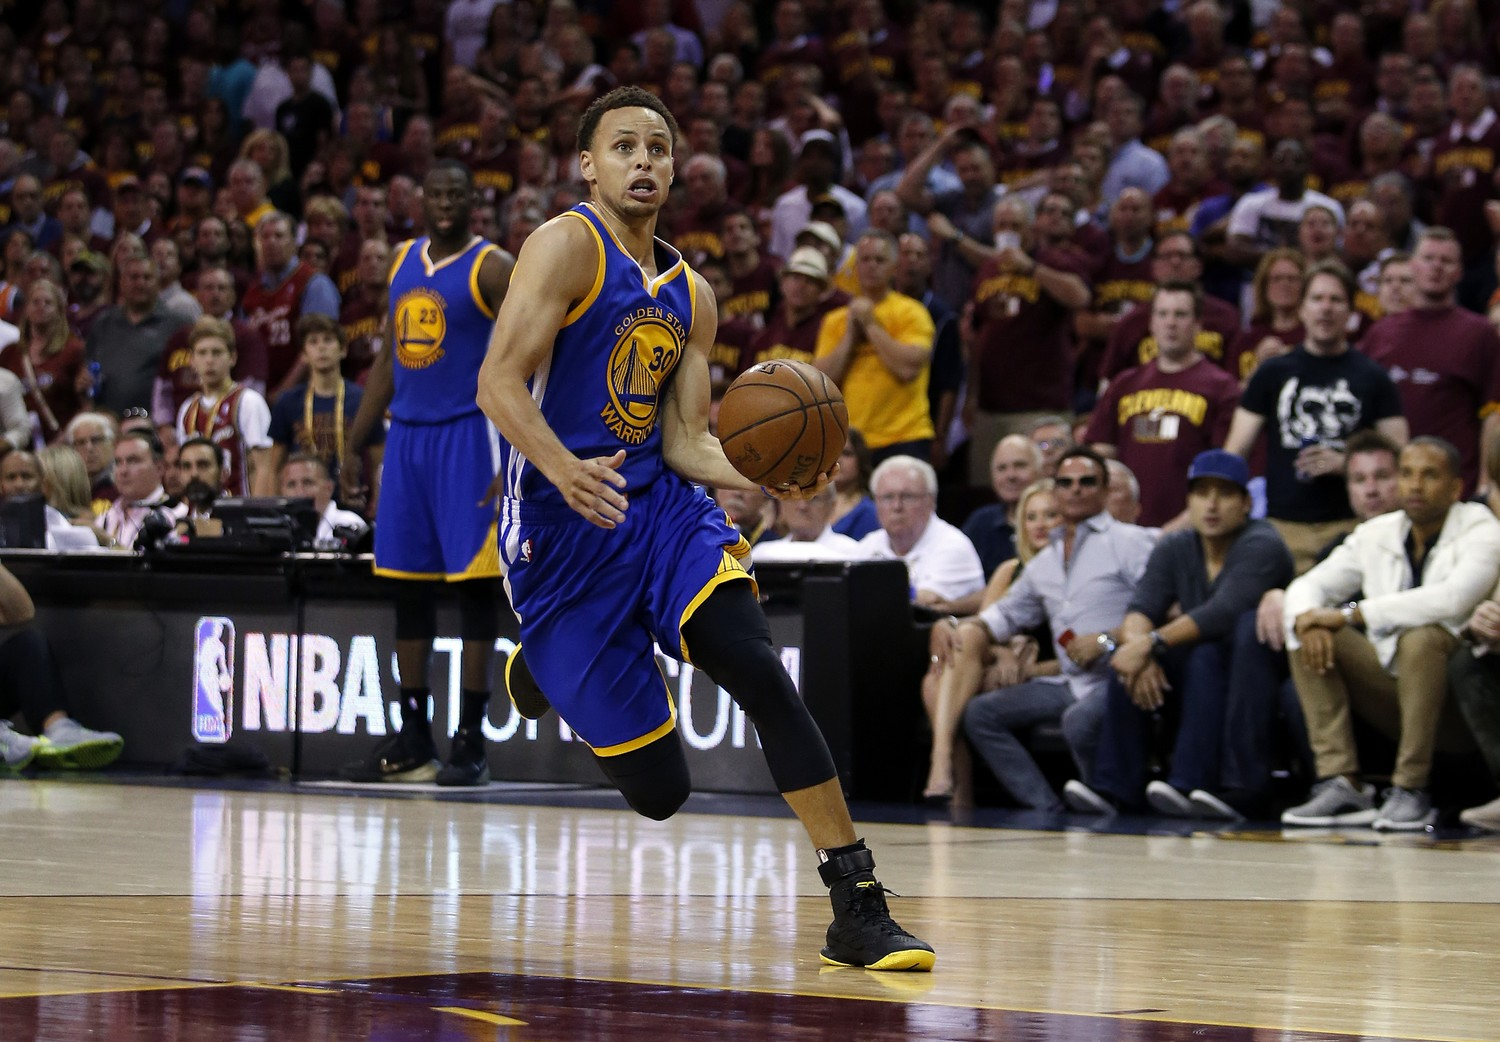 Steph Curry è stato votato come Most Valuable Player del 2014-15